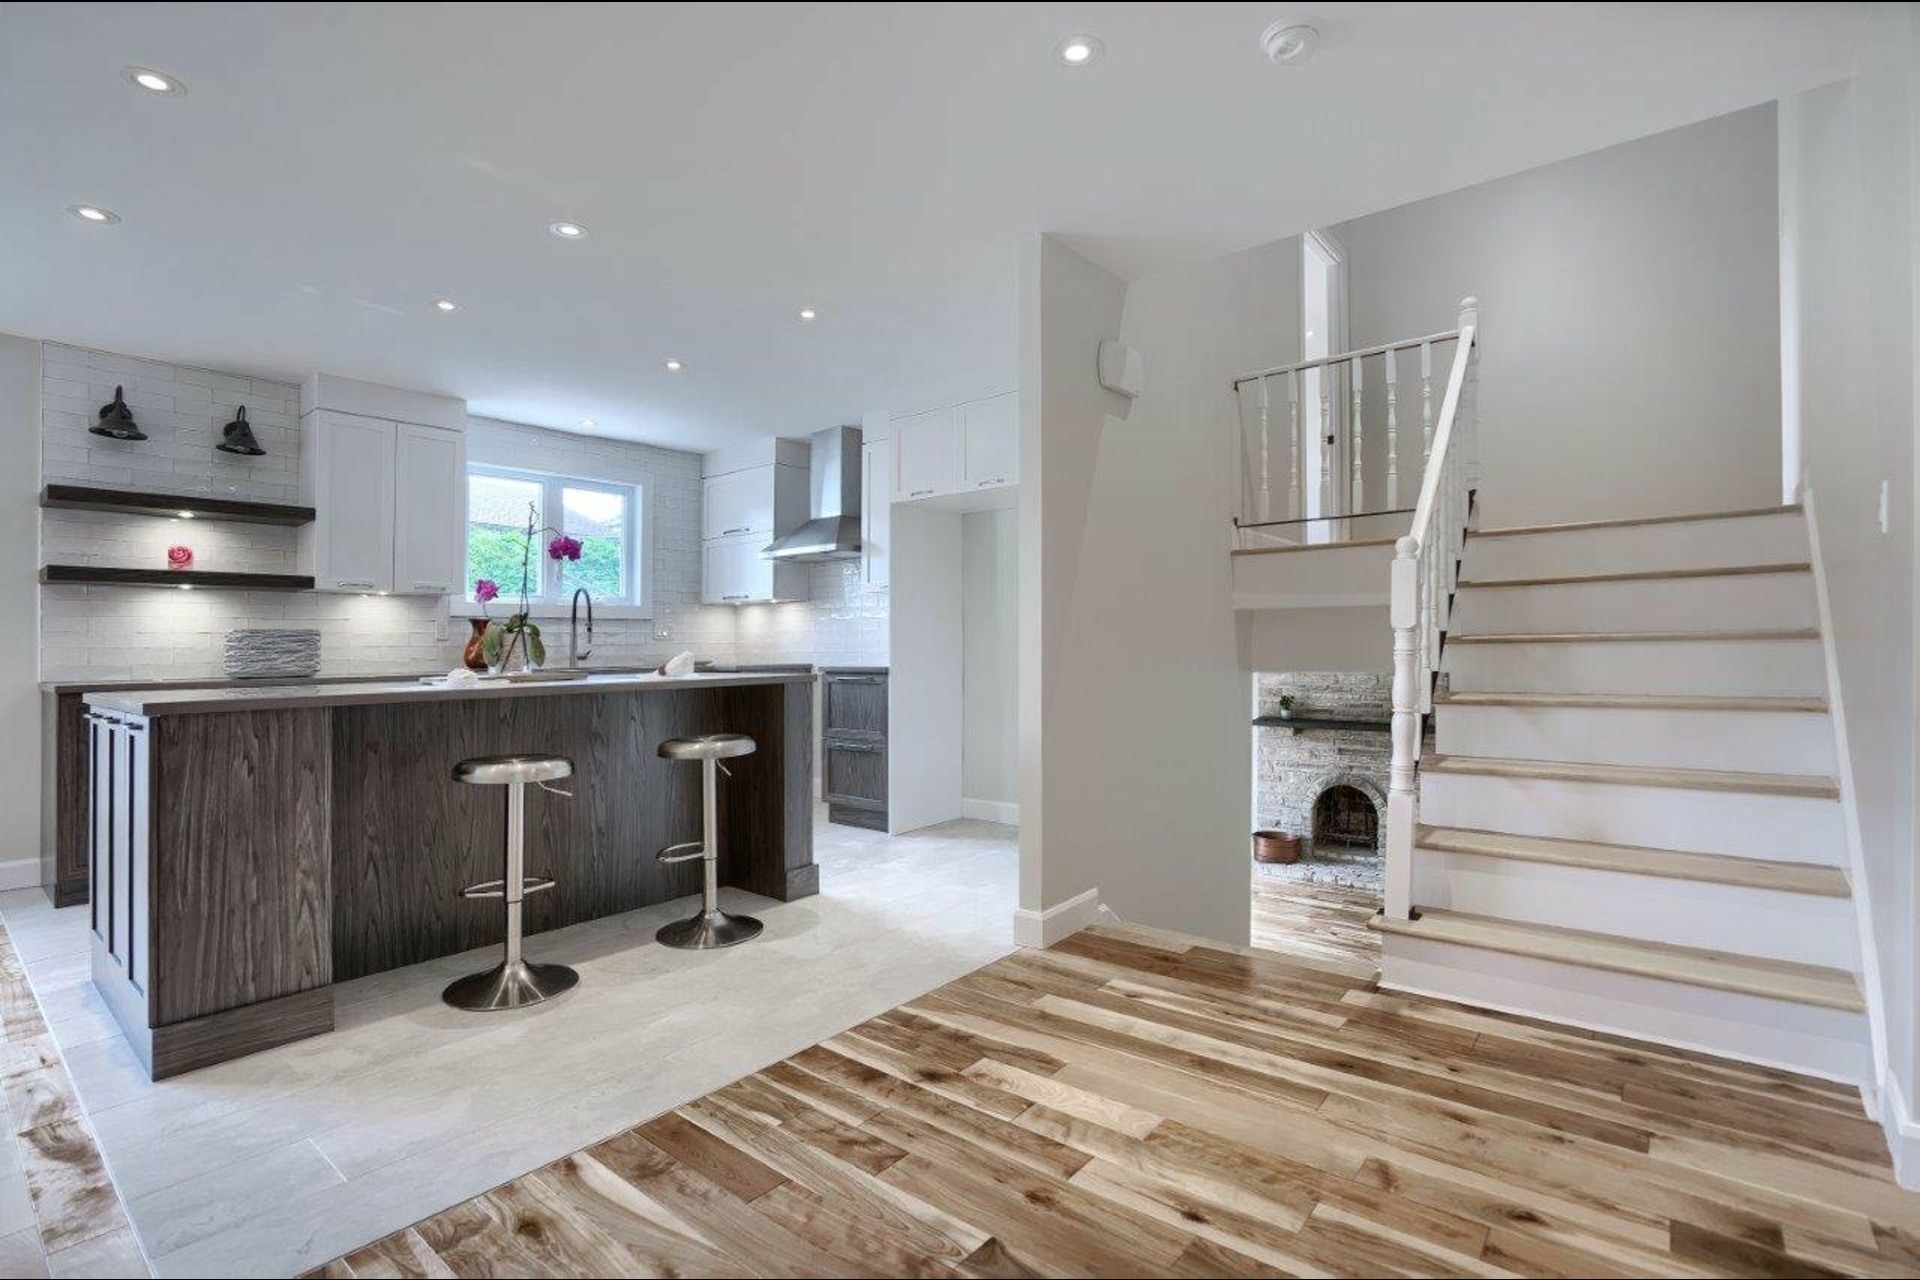 image 10 - House For sale Brossard - 15 rooms